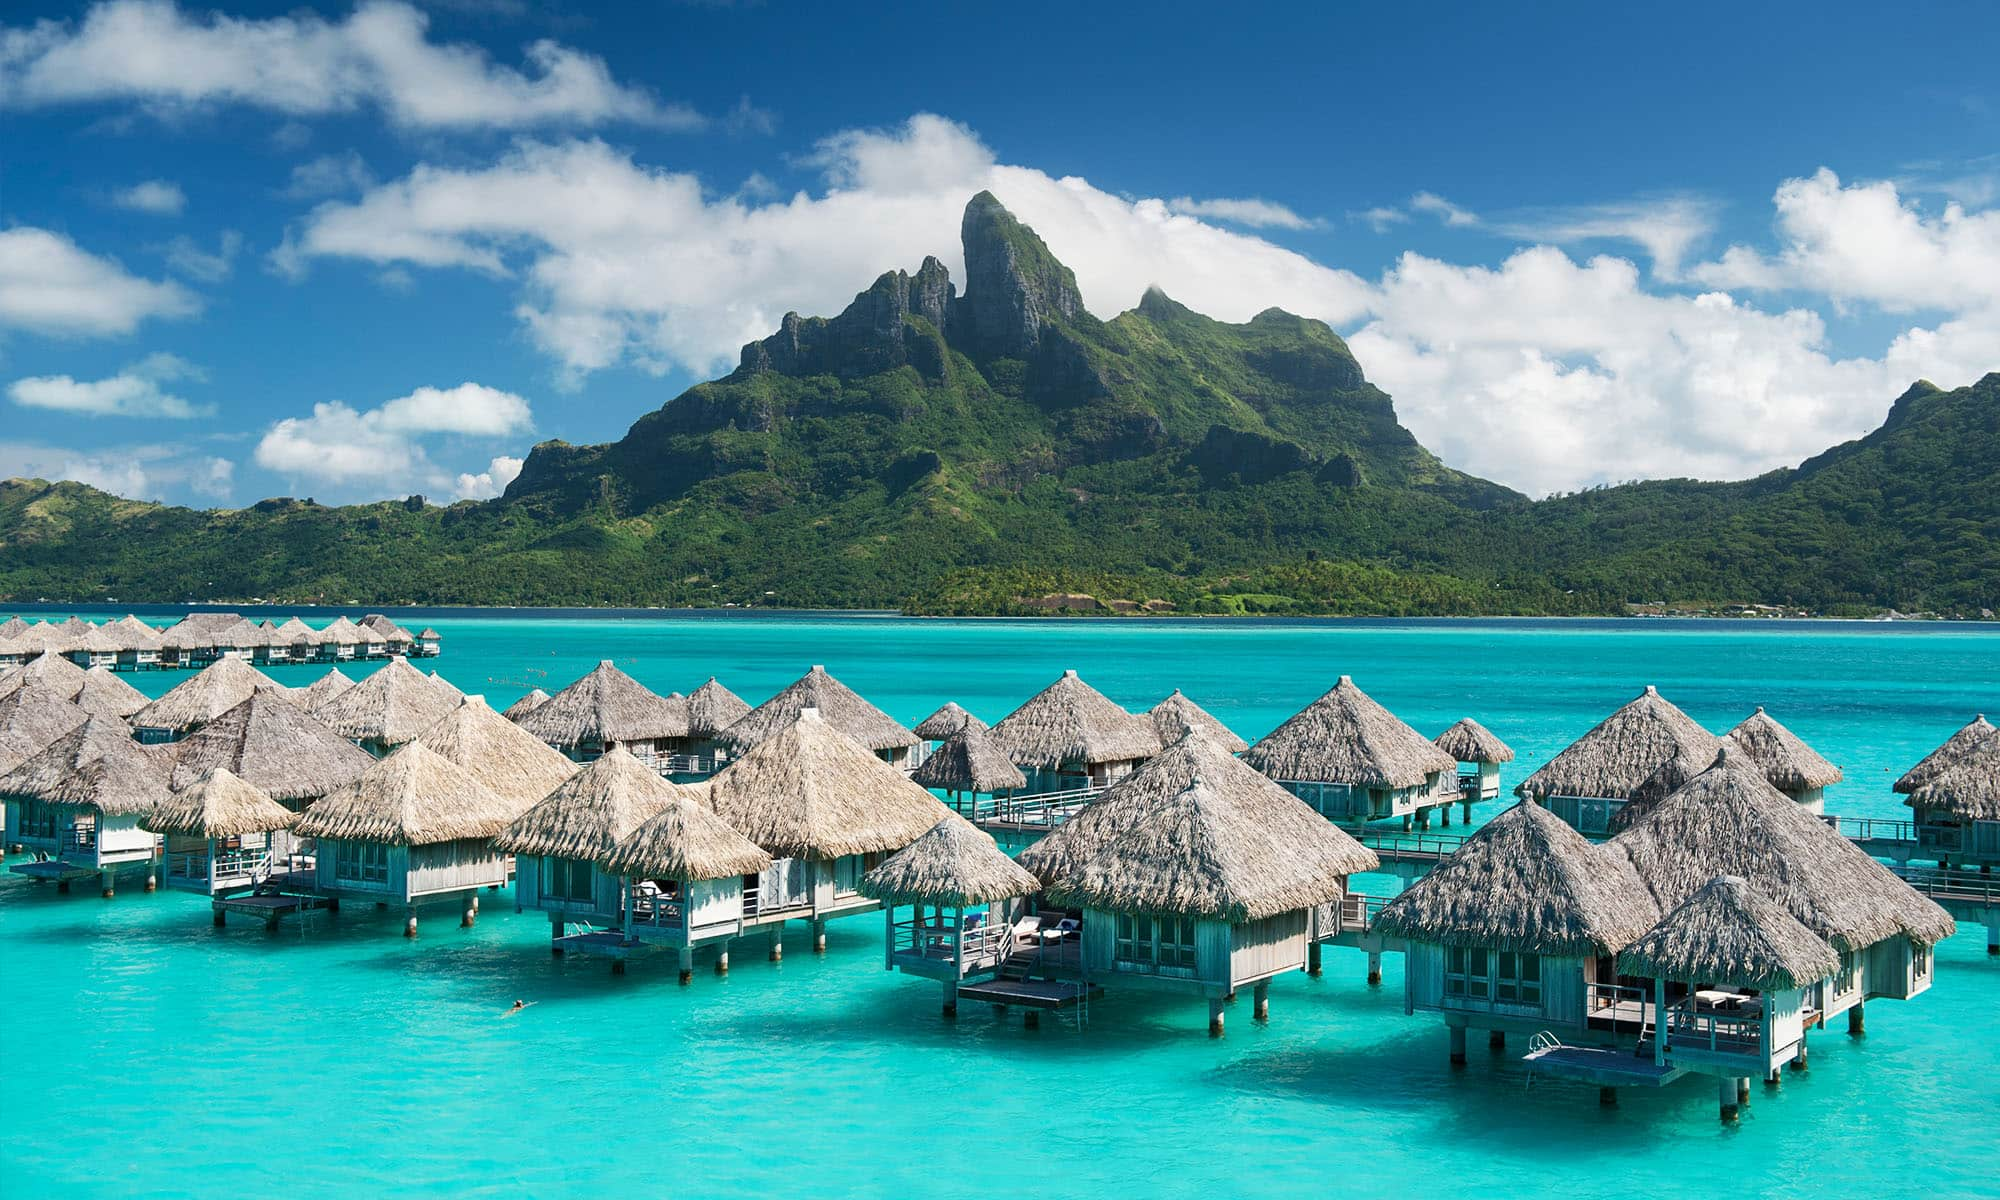 San Francisco to Tahiti French Polynesia $622 RT Nonstop Airfares on United Airlines / French Bee Airlines (Travel January - March 2022)